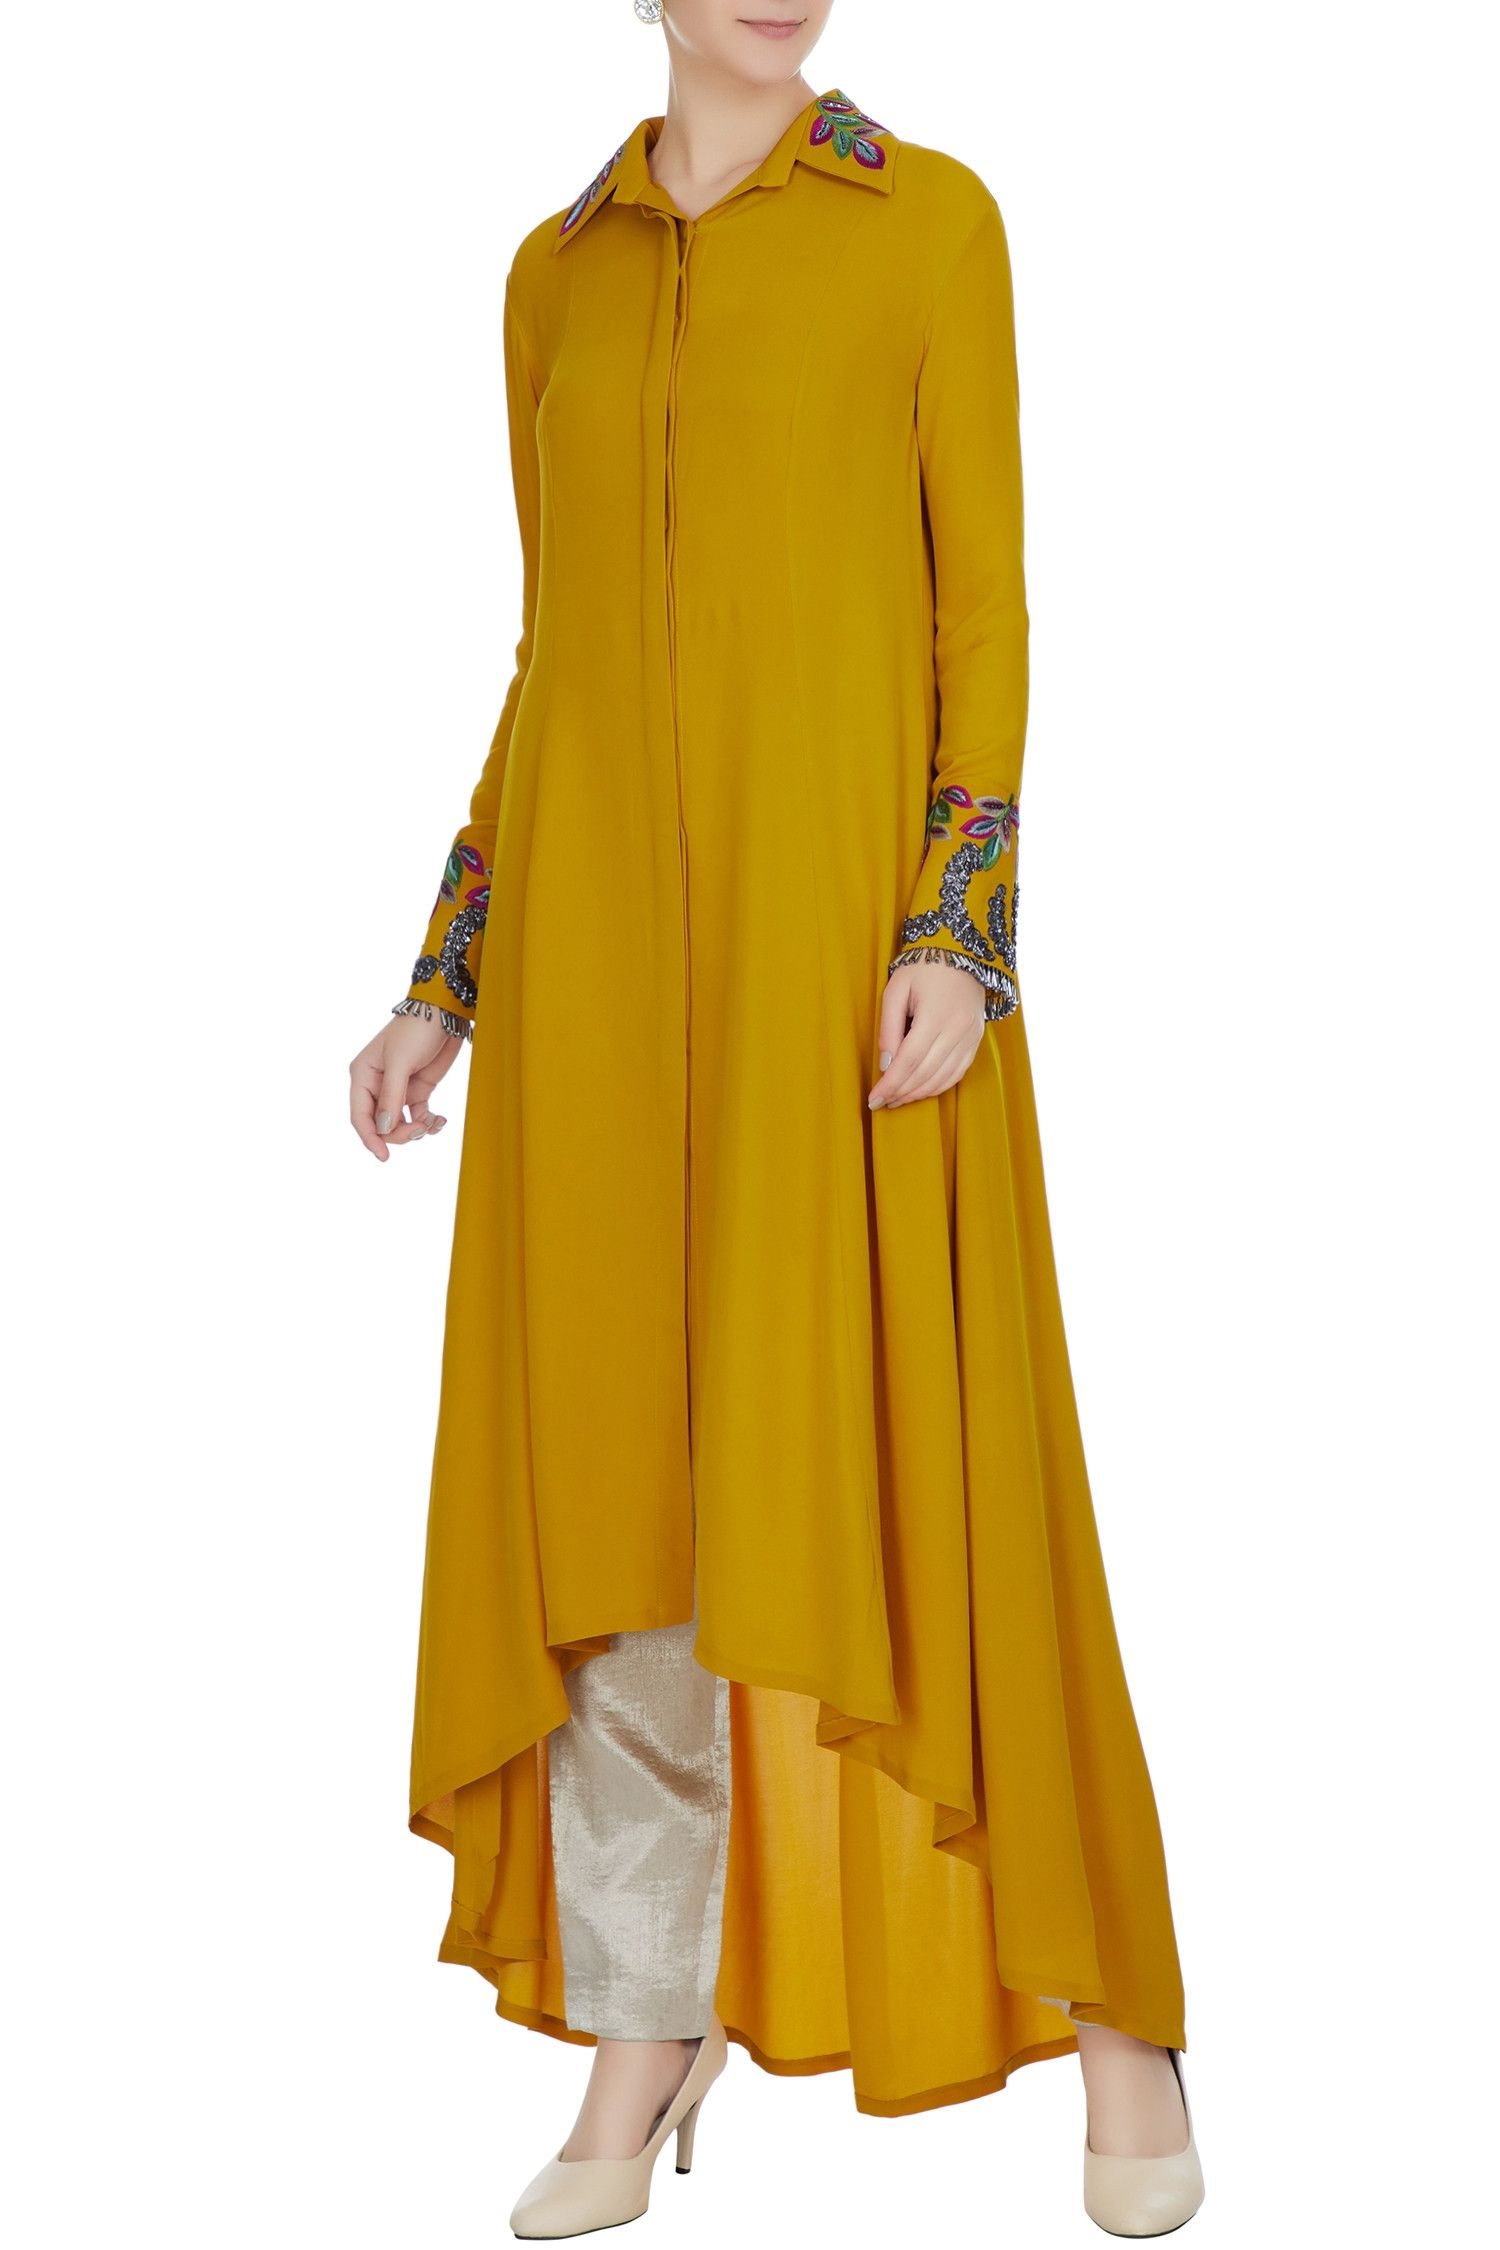 62ce755b164 Buy Mustard yellow double georgette resham embroidered tunic by Manish  Malhotra at Aza Fashions Buy MUSTARD